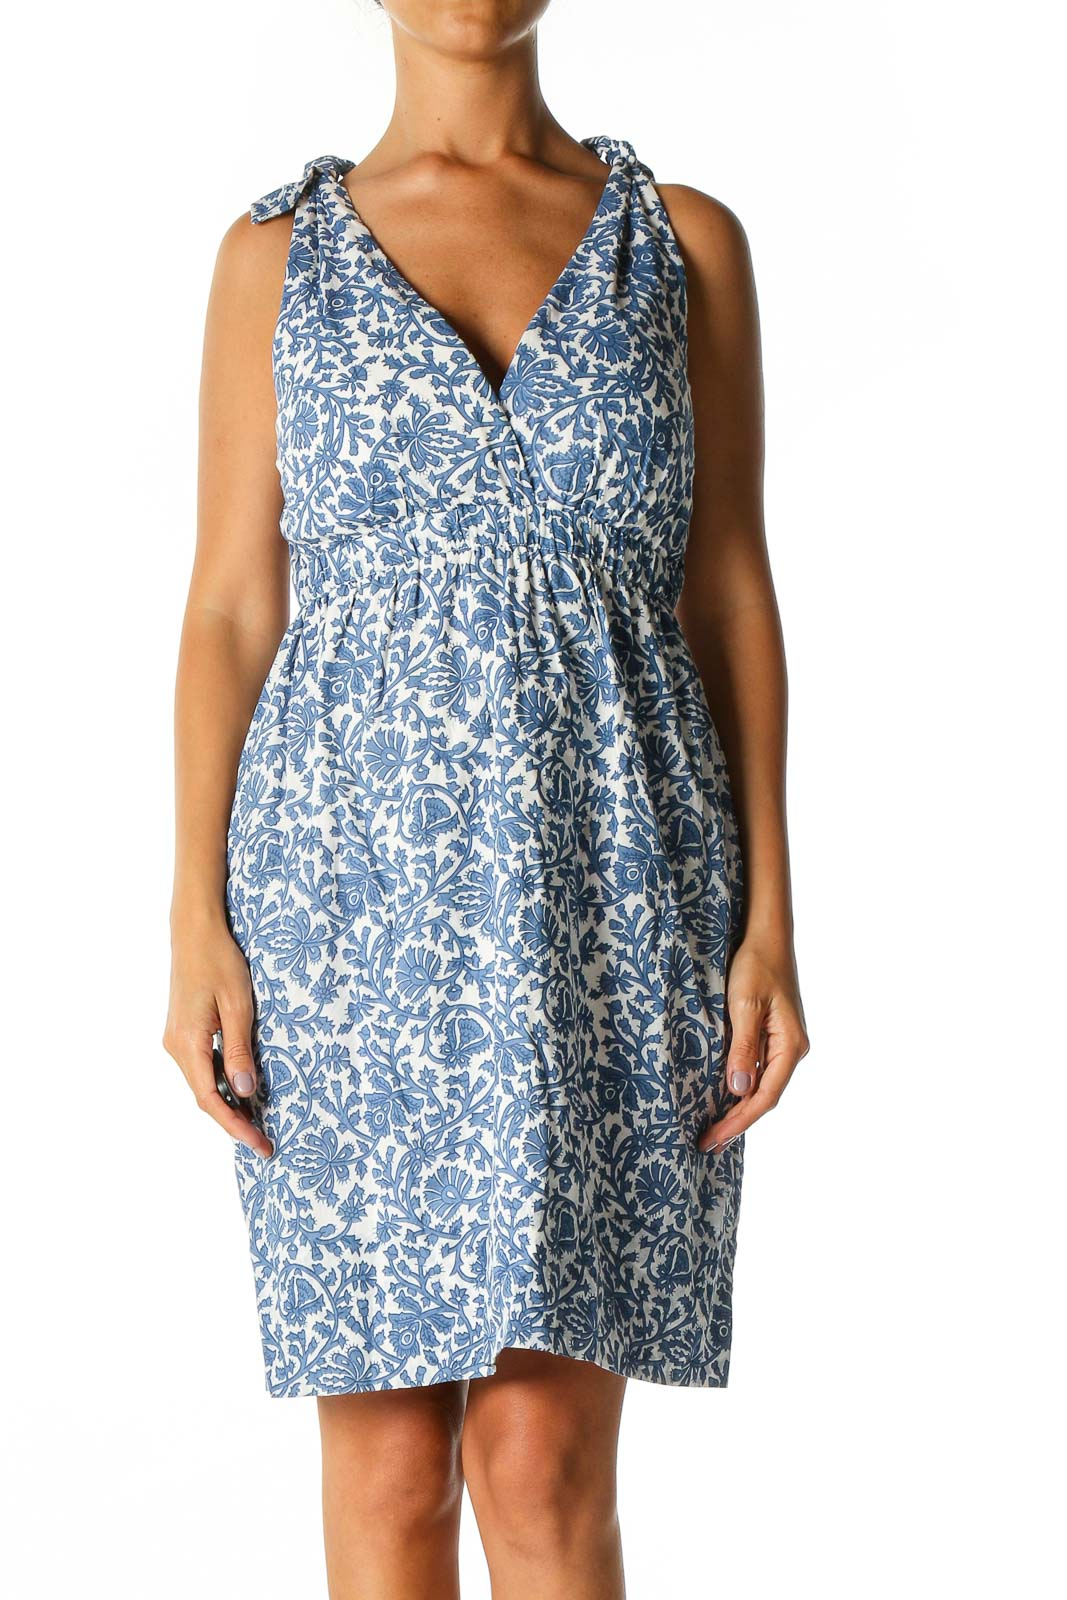 Blue Floral Print Holiday A-Line Dress Front